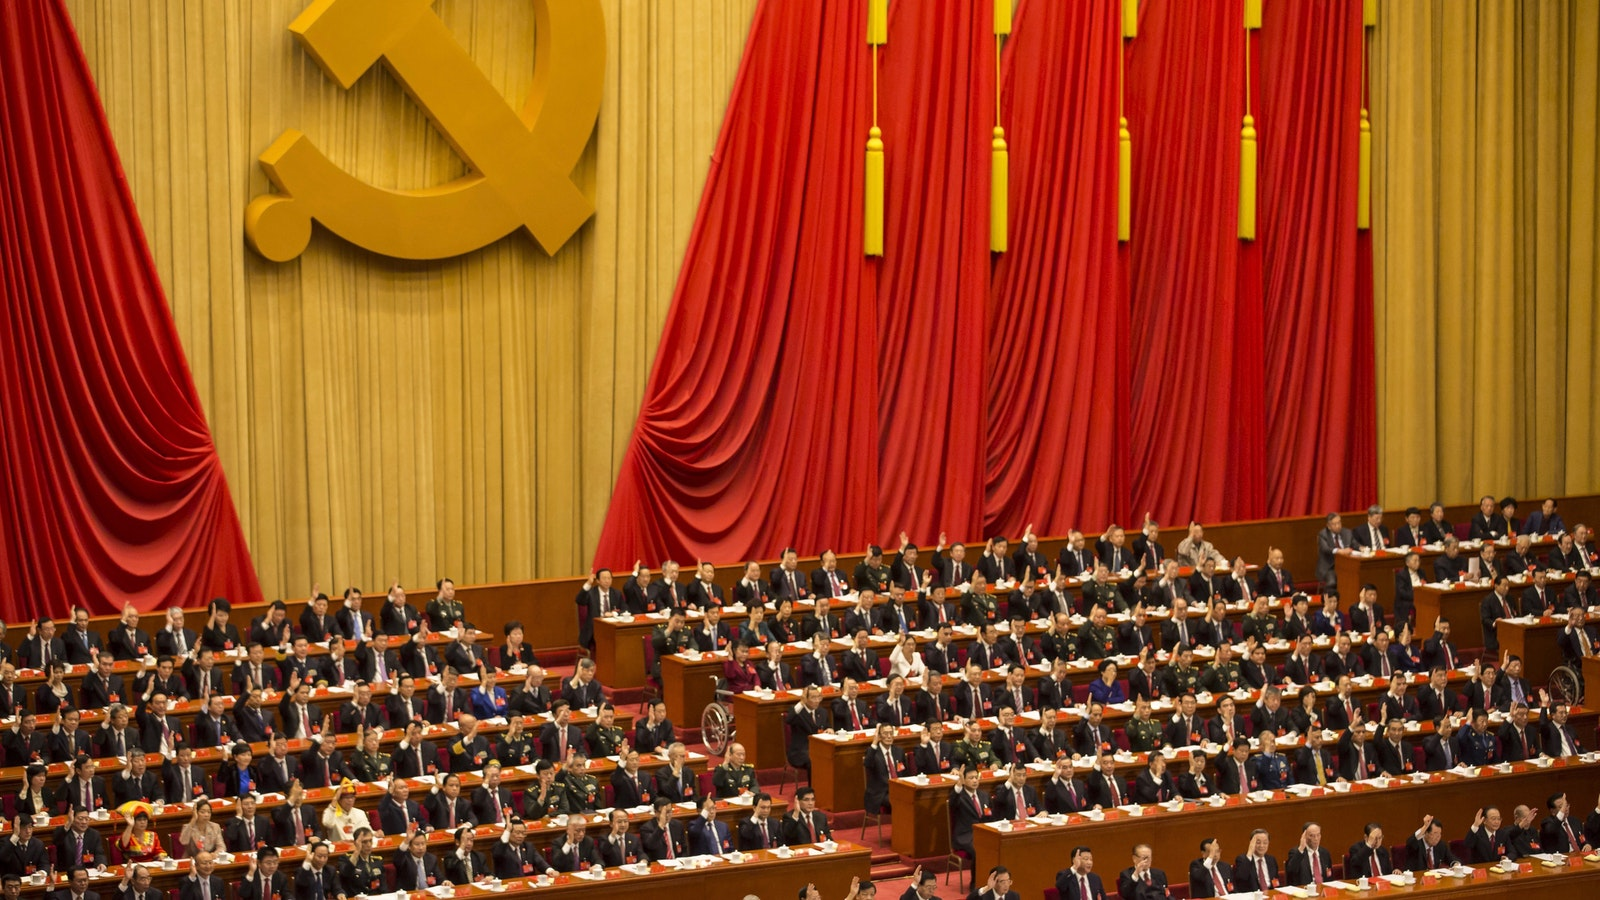 A session of the Chinese Communist Party's National Congress last October. Photo by Bloomberg.